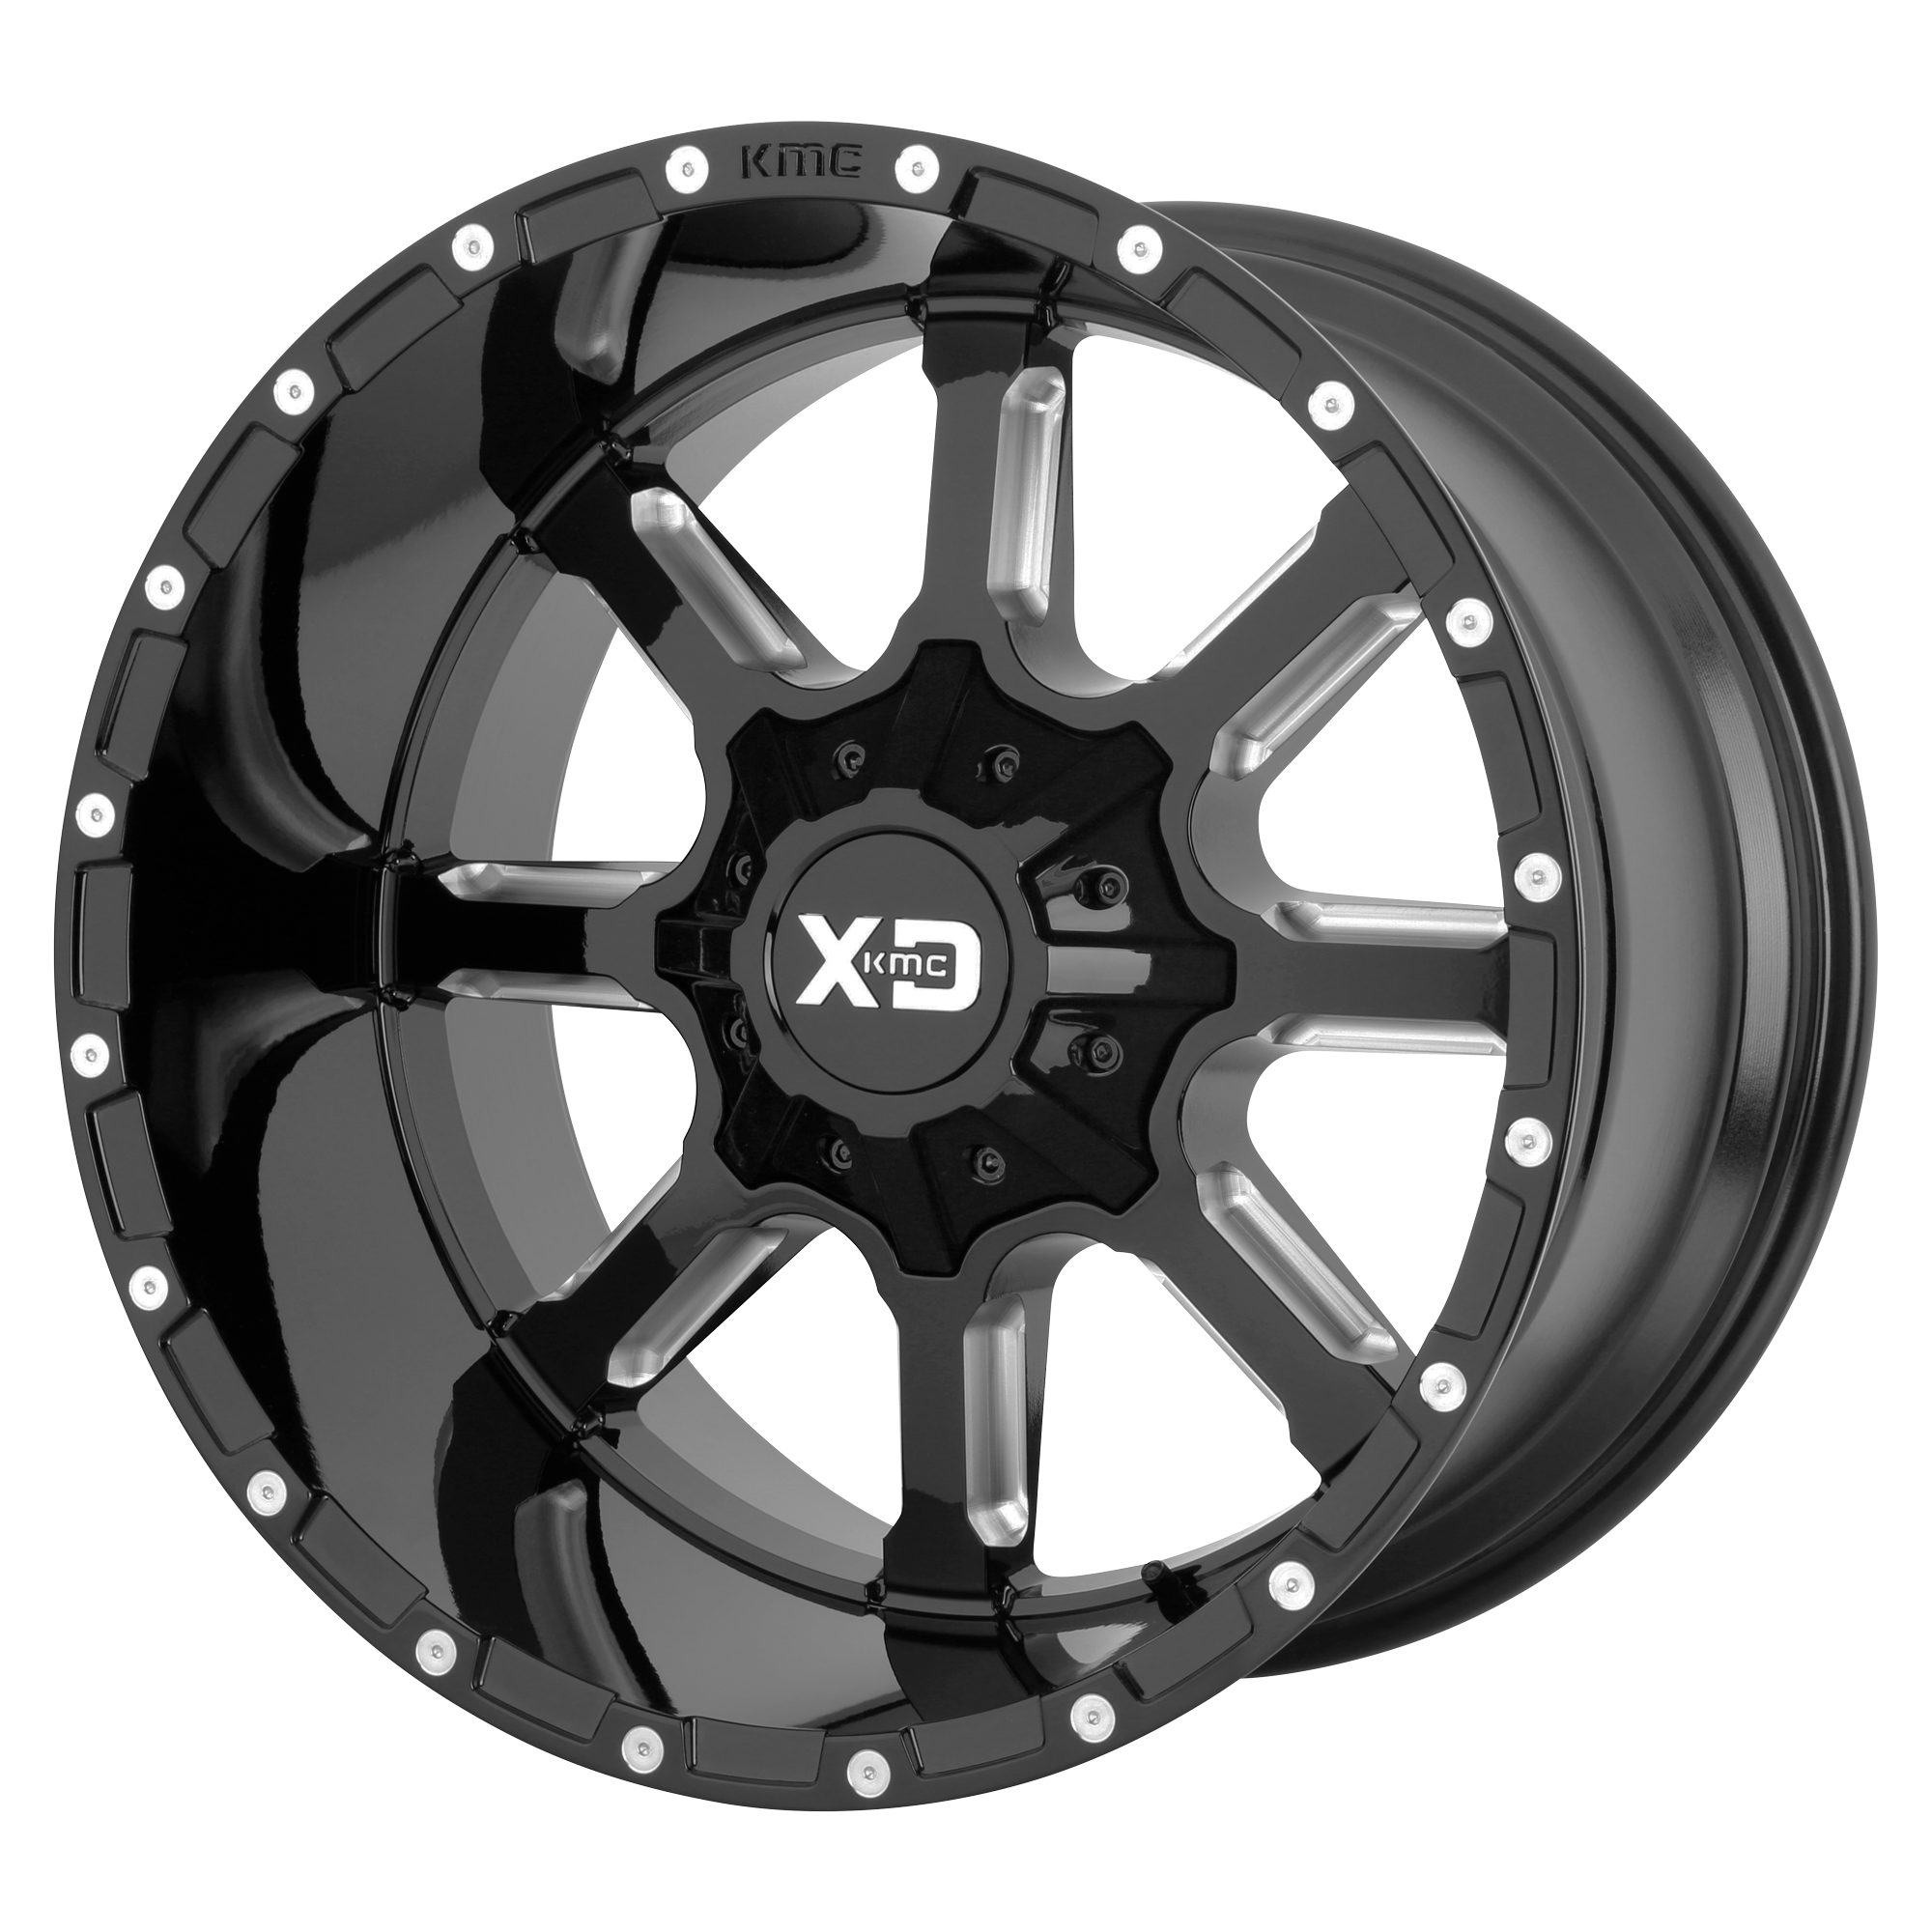 XD SERIES BY KMC WHEELS XD838 MAMMOTH Gloss Black Milled